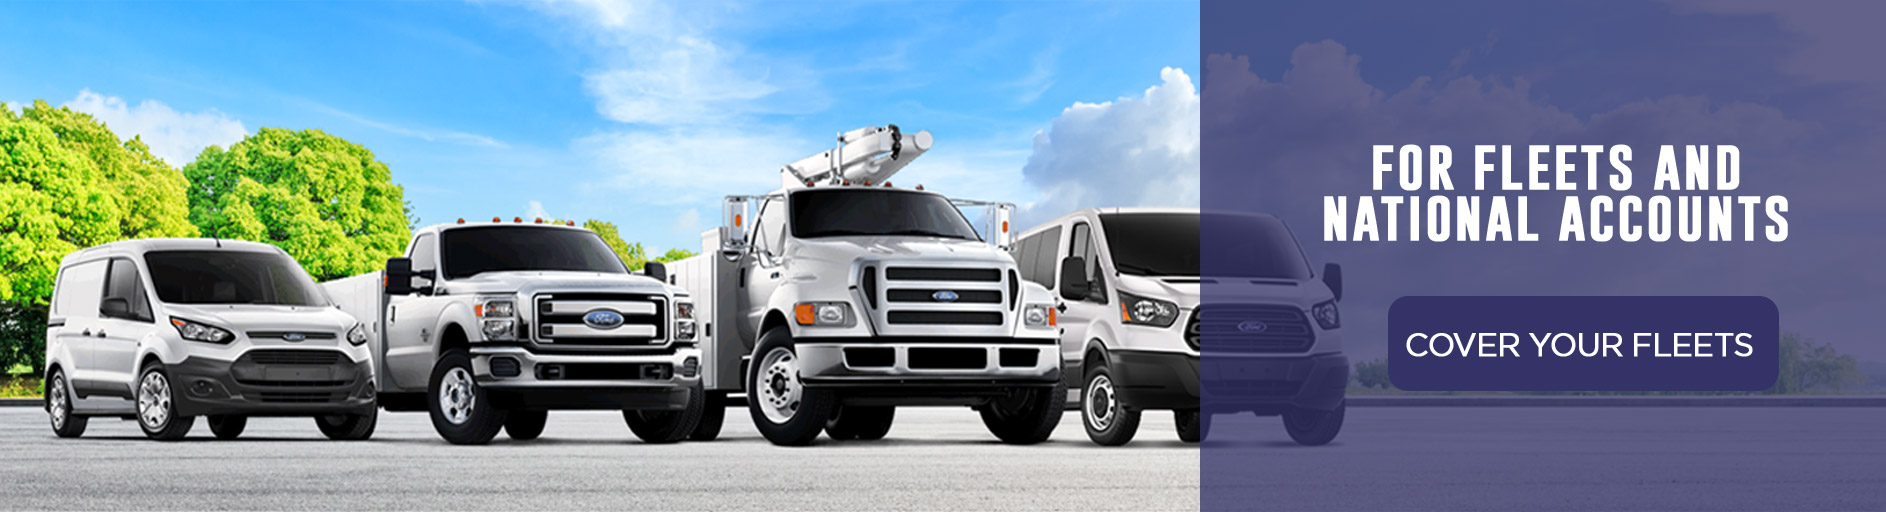 For Fleets and National Accounts